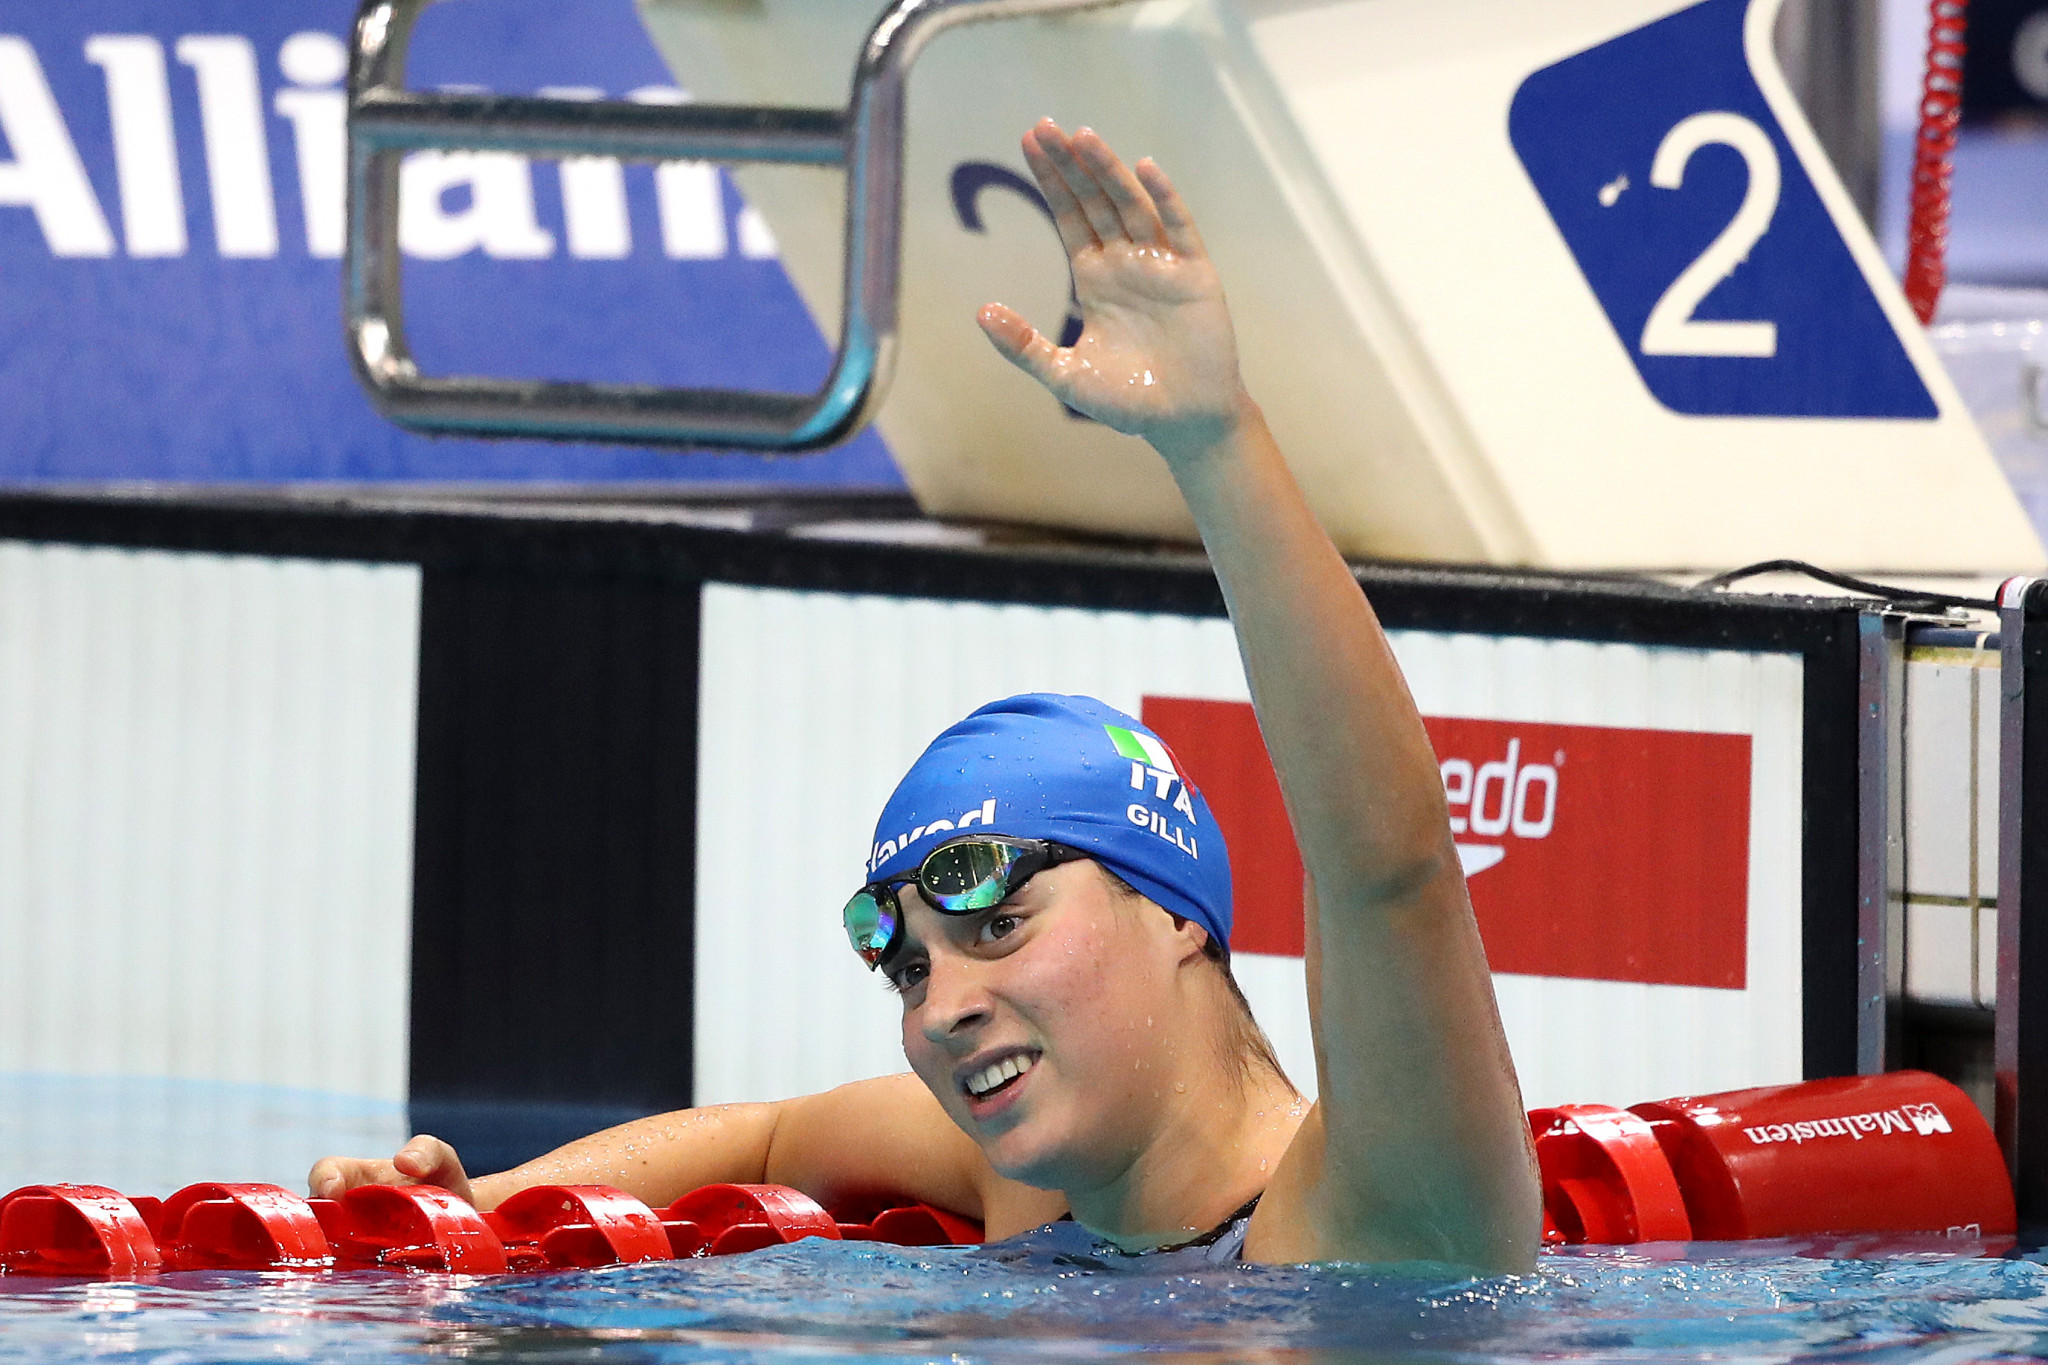 World champion Carlotta Gilli is among a strong Italian contingent scheduled to participate on home water at the World Para Swimming World Series leg in Lignano  ©Getty Images